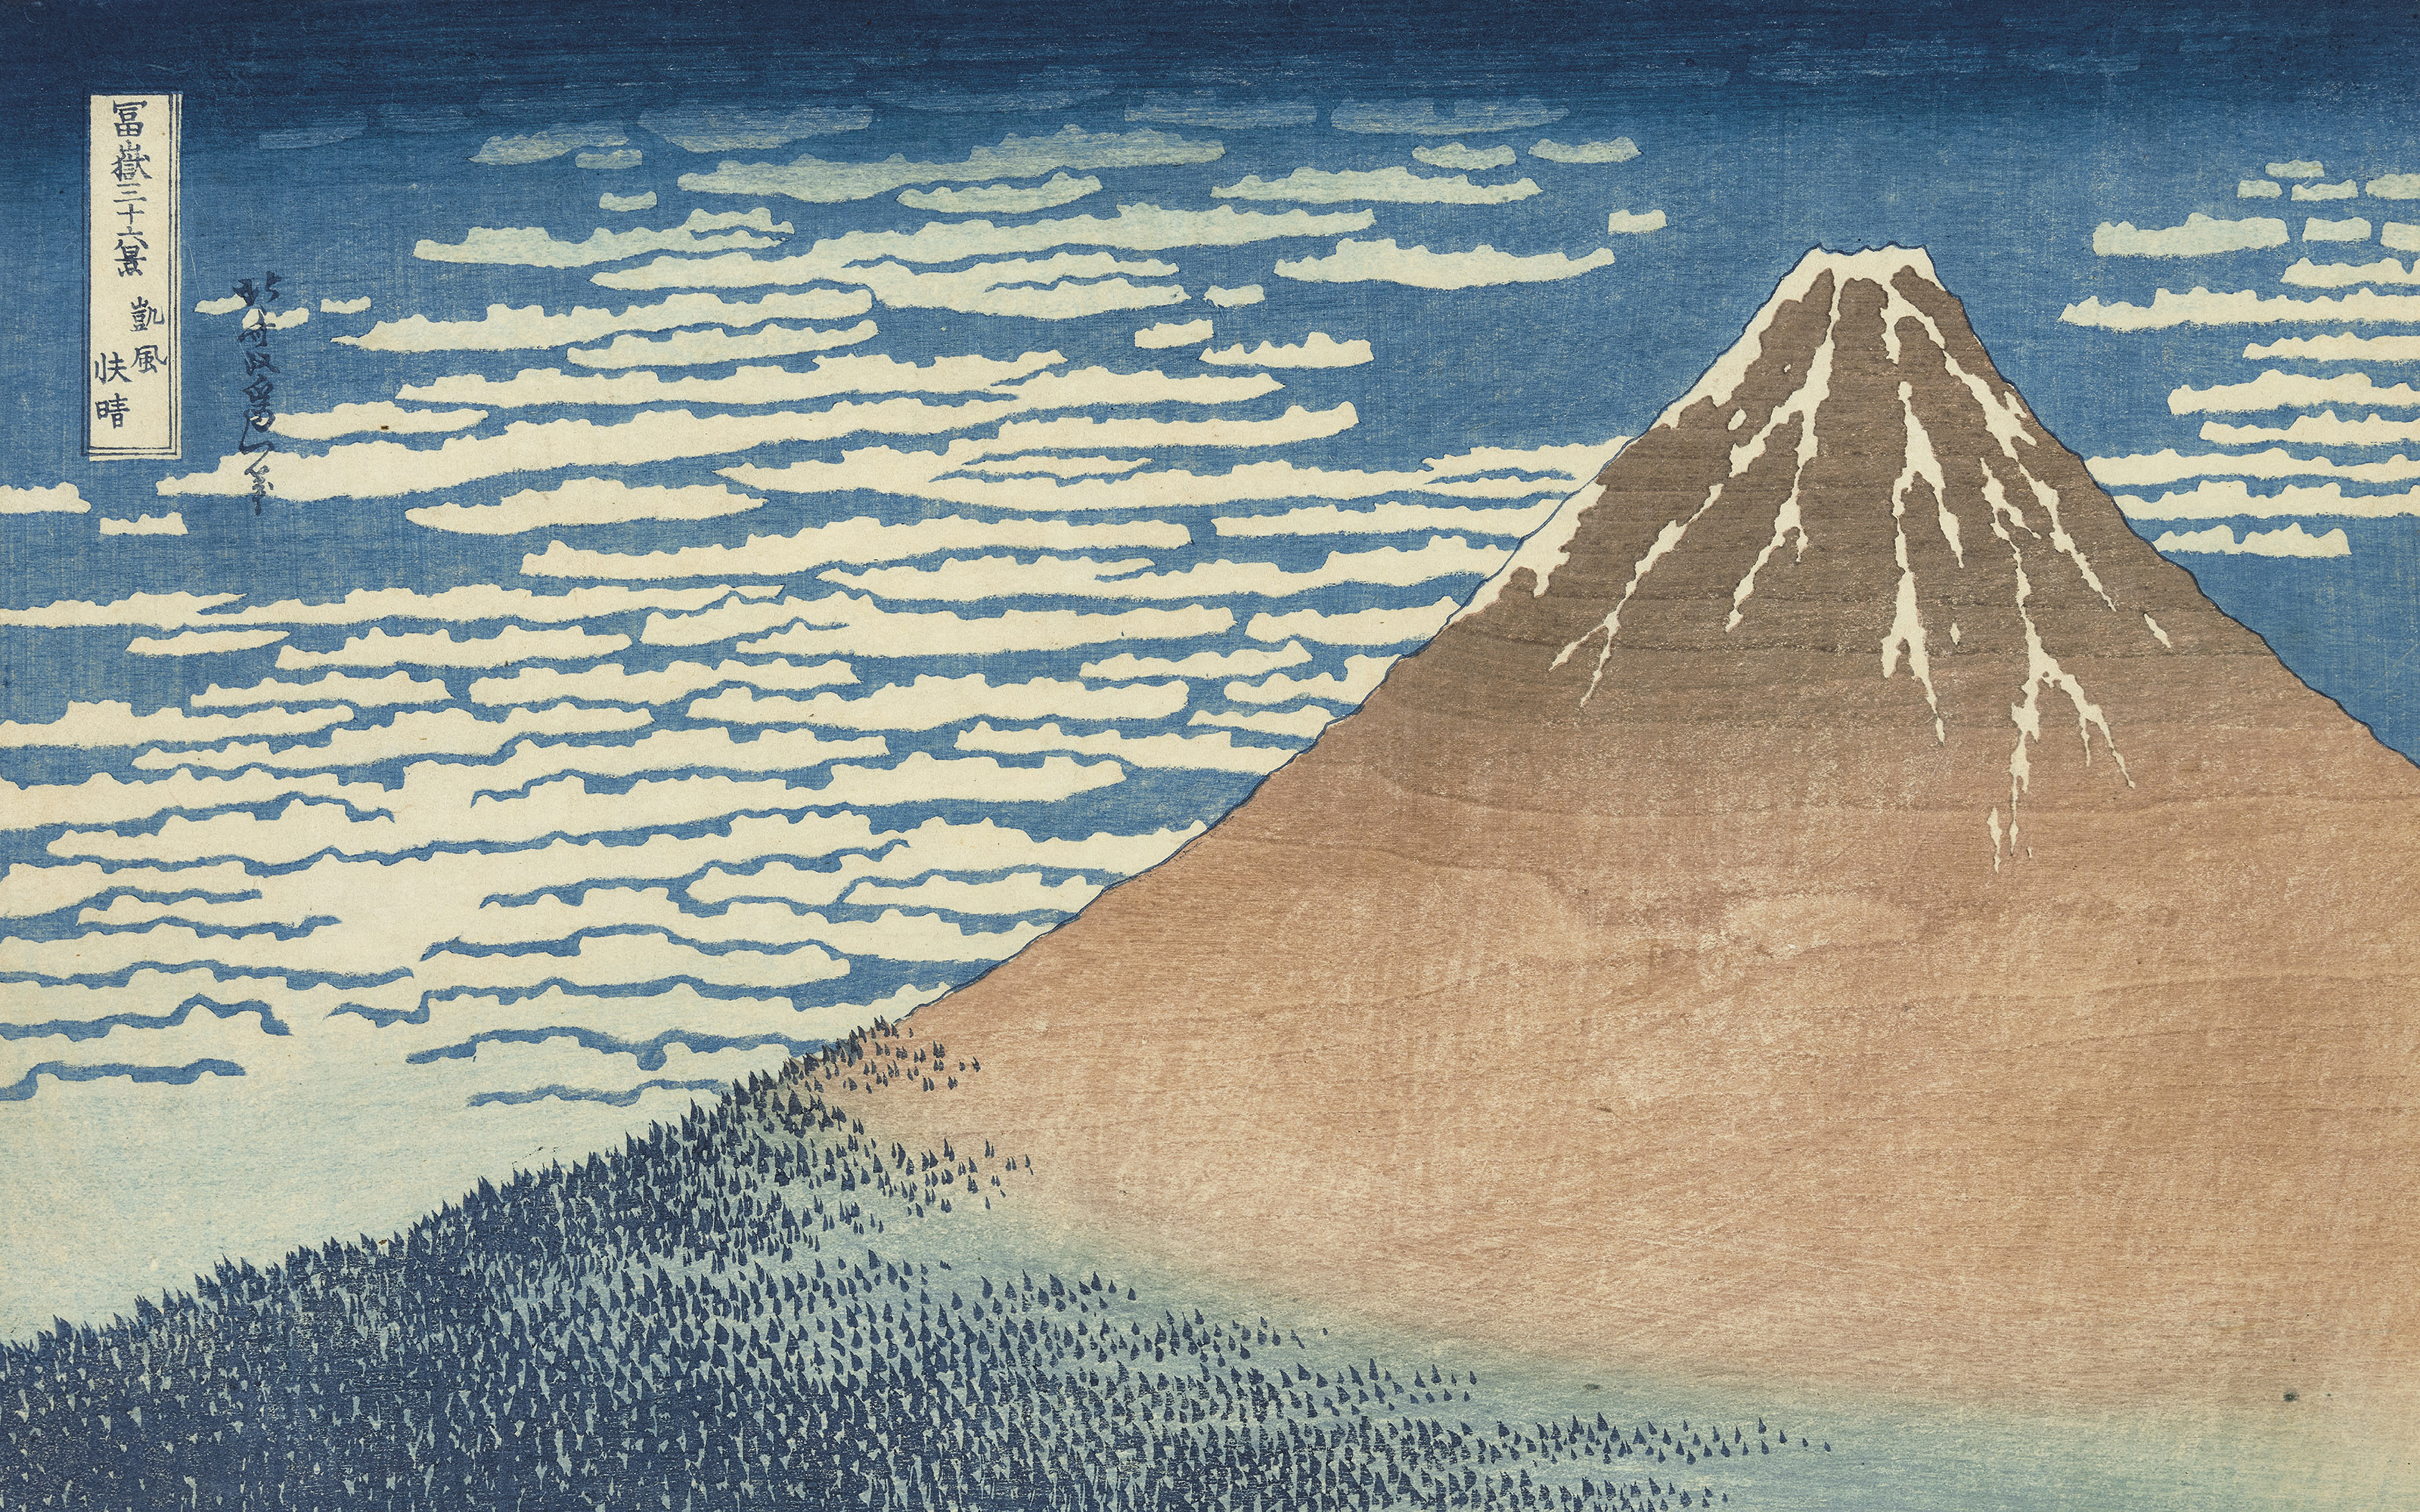 Masterpieces of Ukiyo-e: A Col auction at Christies